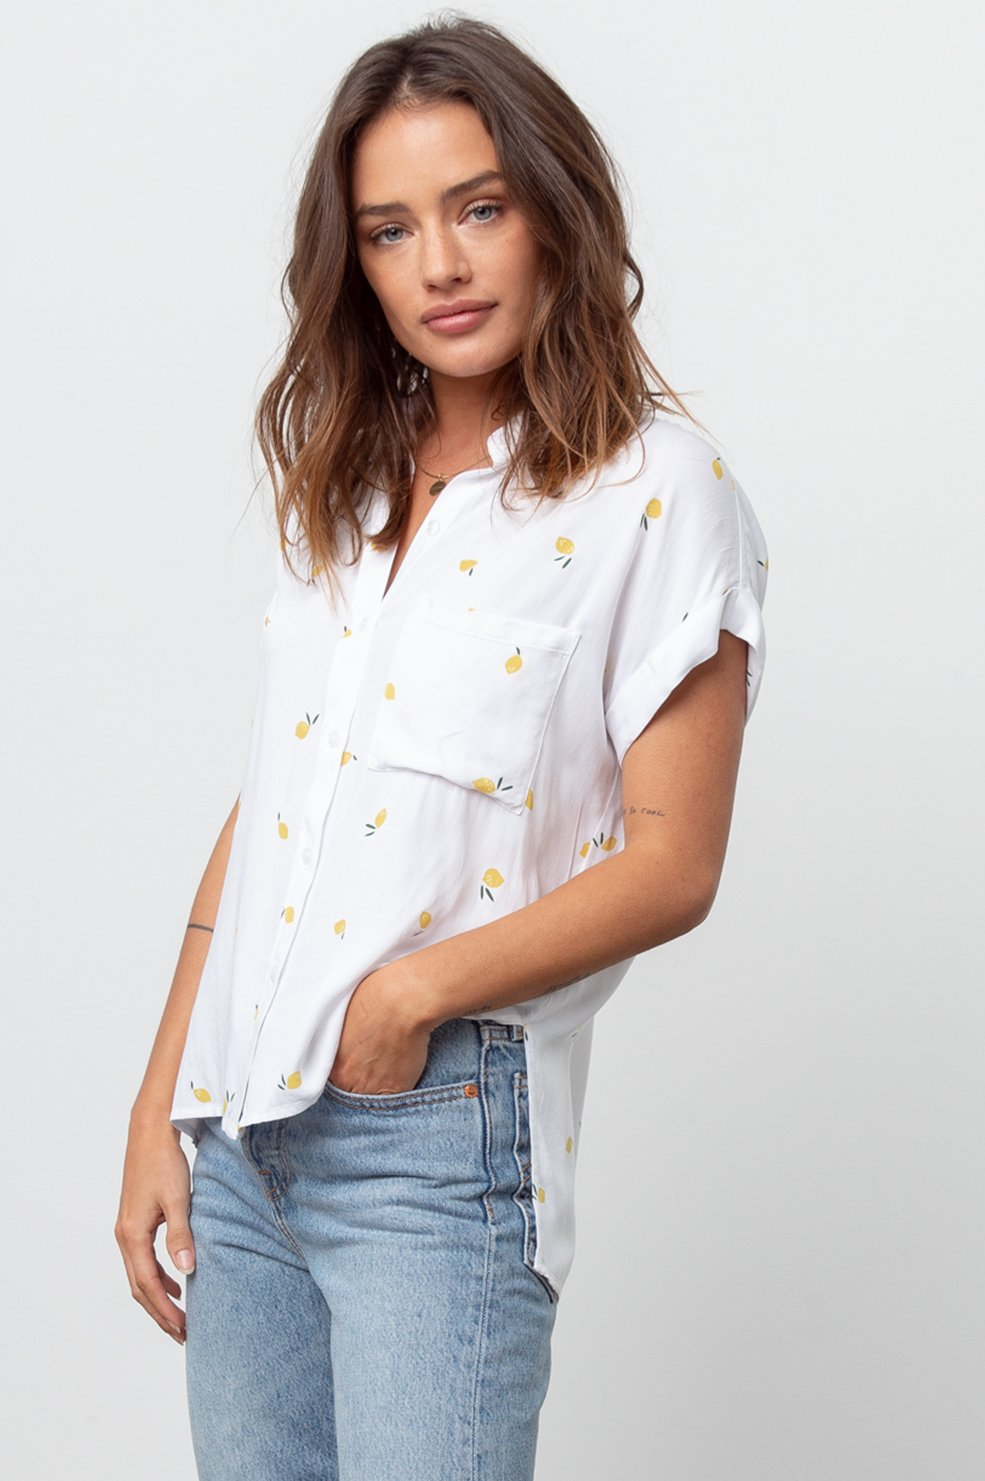 RAILS CLOTHING - Whitney Shirt online at PAYA boutique